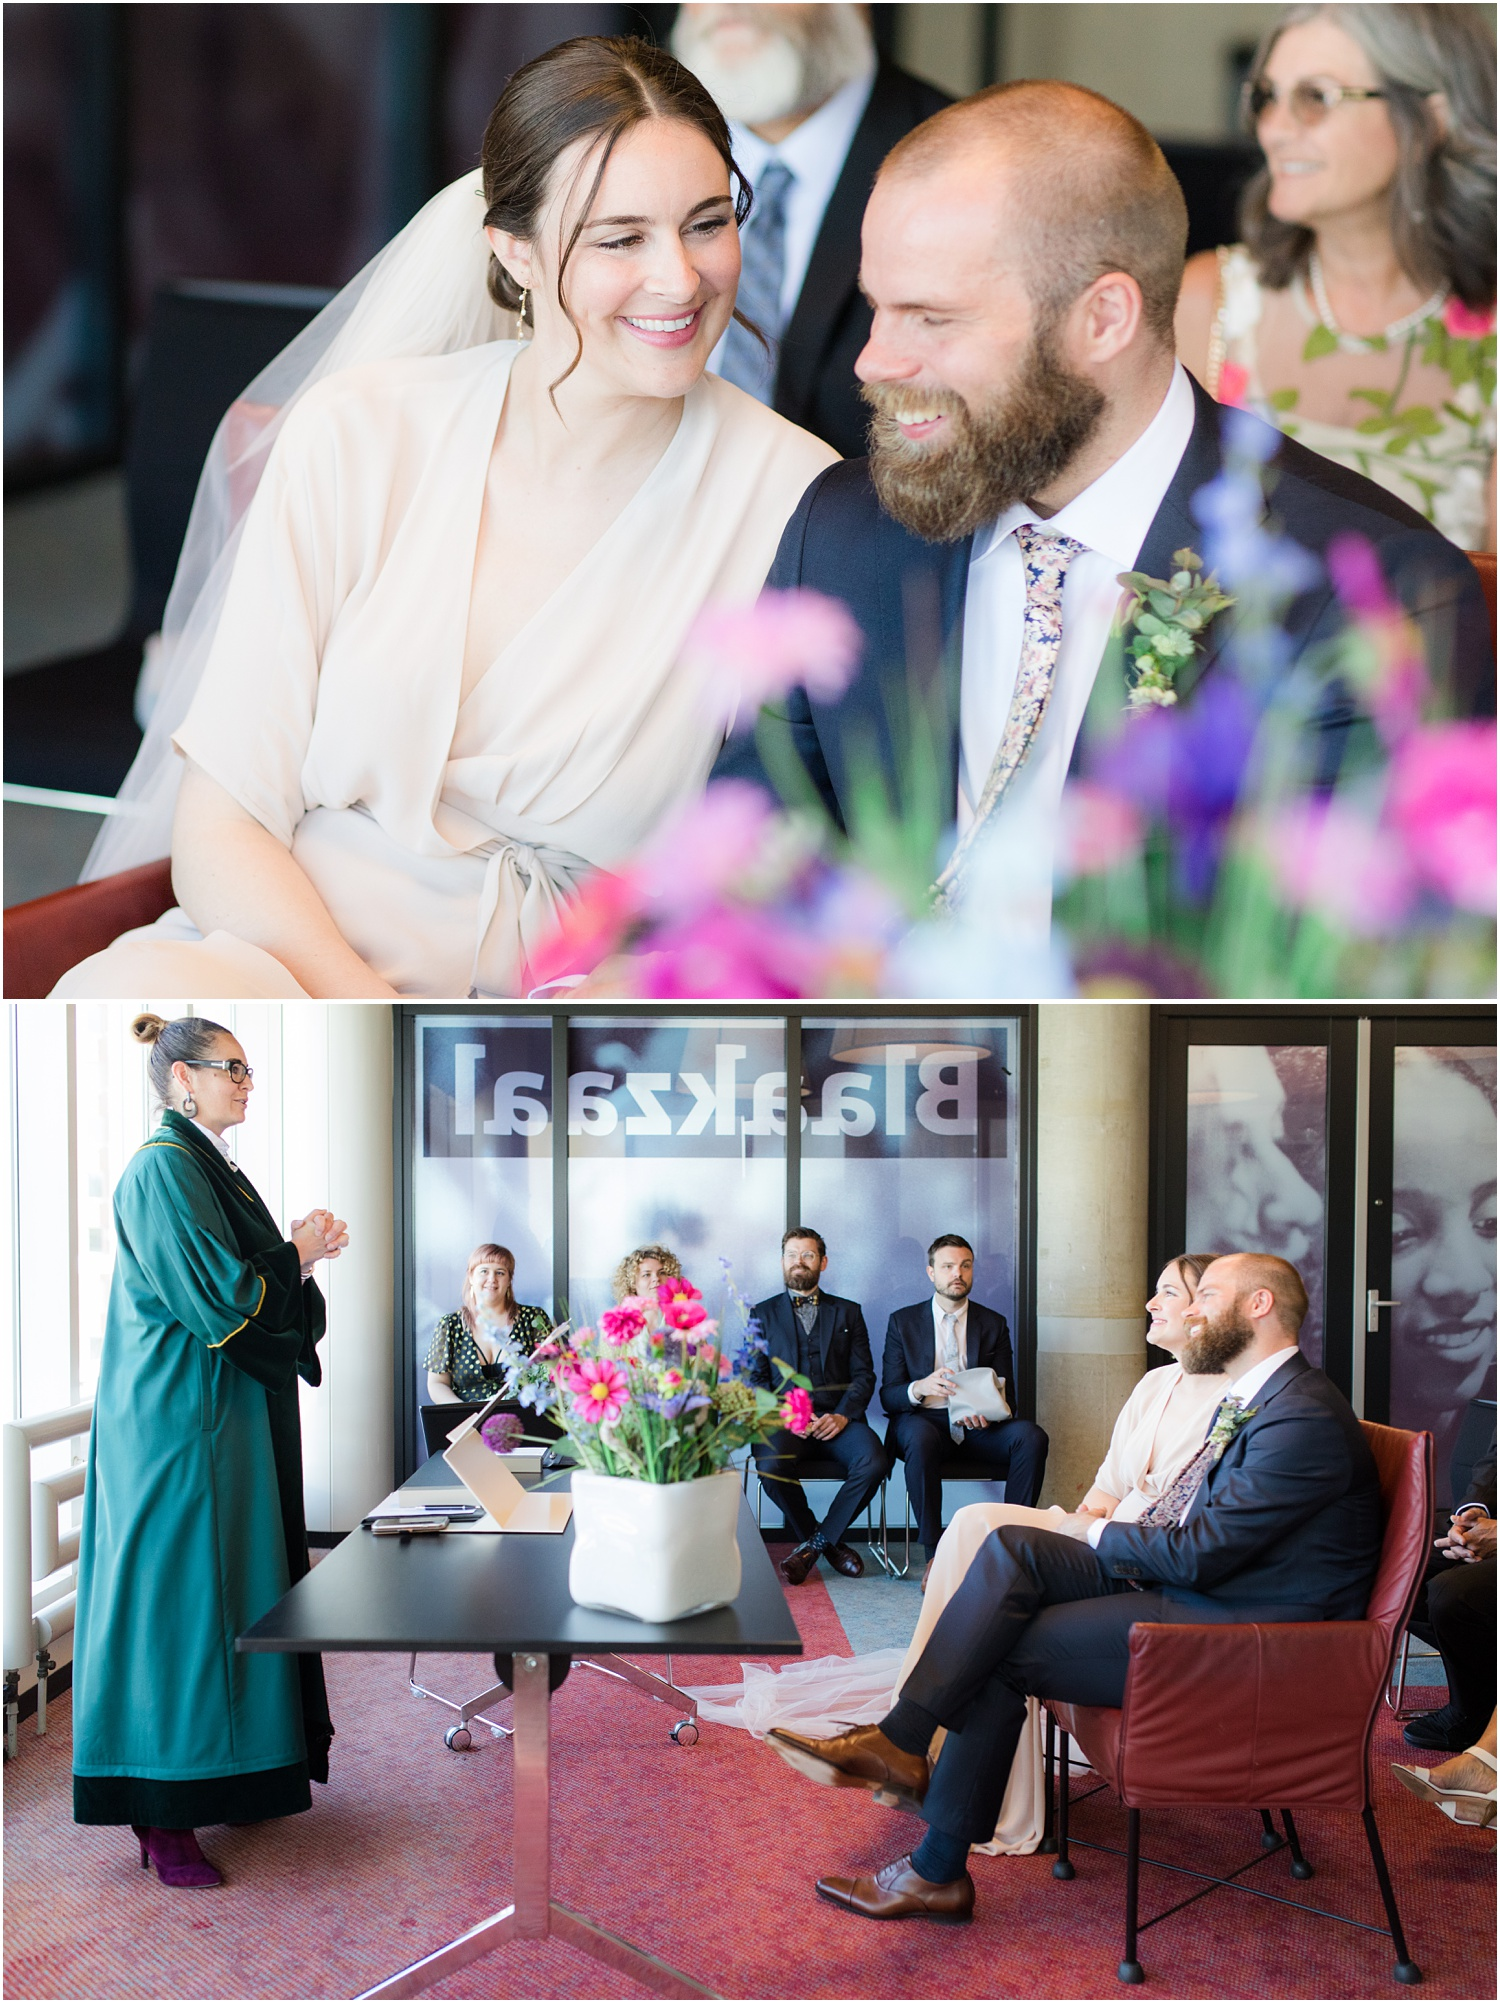 Wedding ceremony at de Bibliotheek Rotterdam